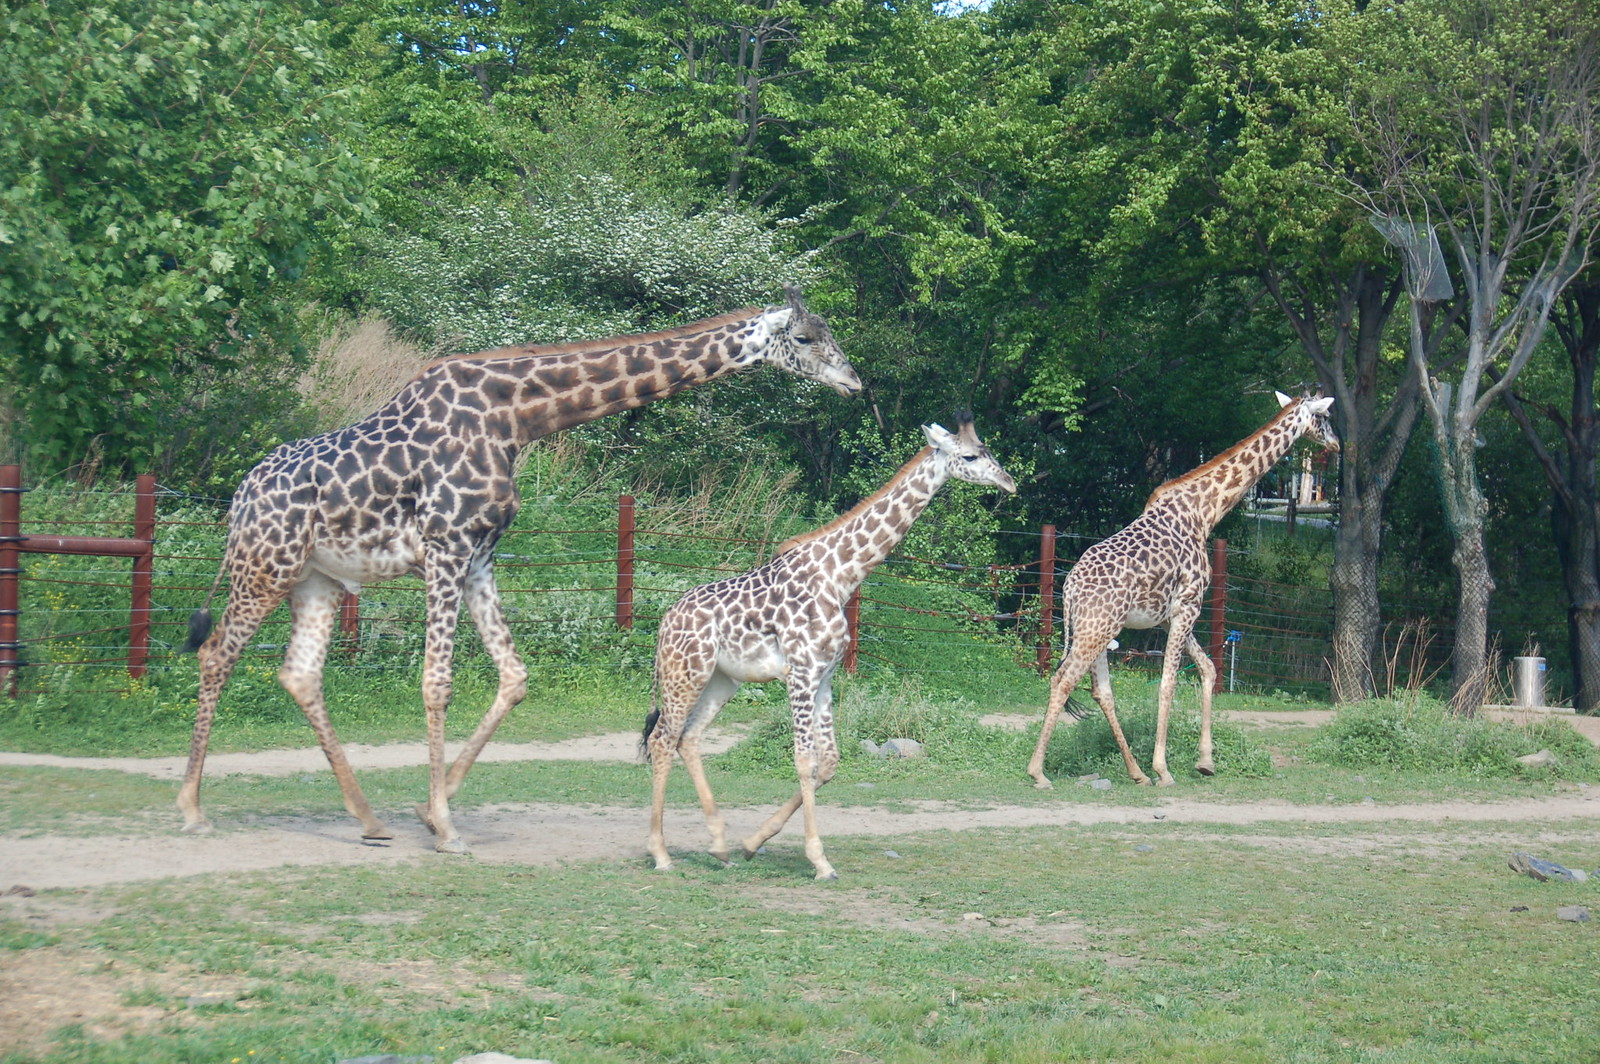 Franklin Park Zoo, 15 May 2010: Mother, father, and baby giraffe family